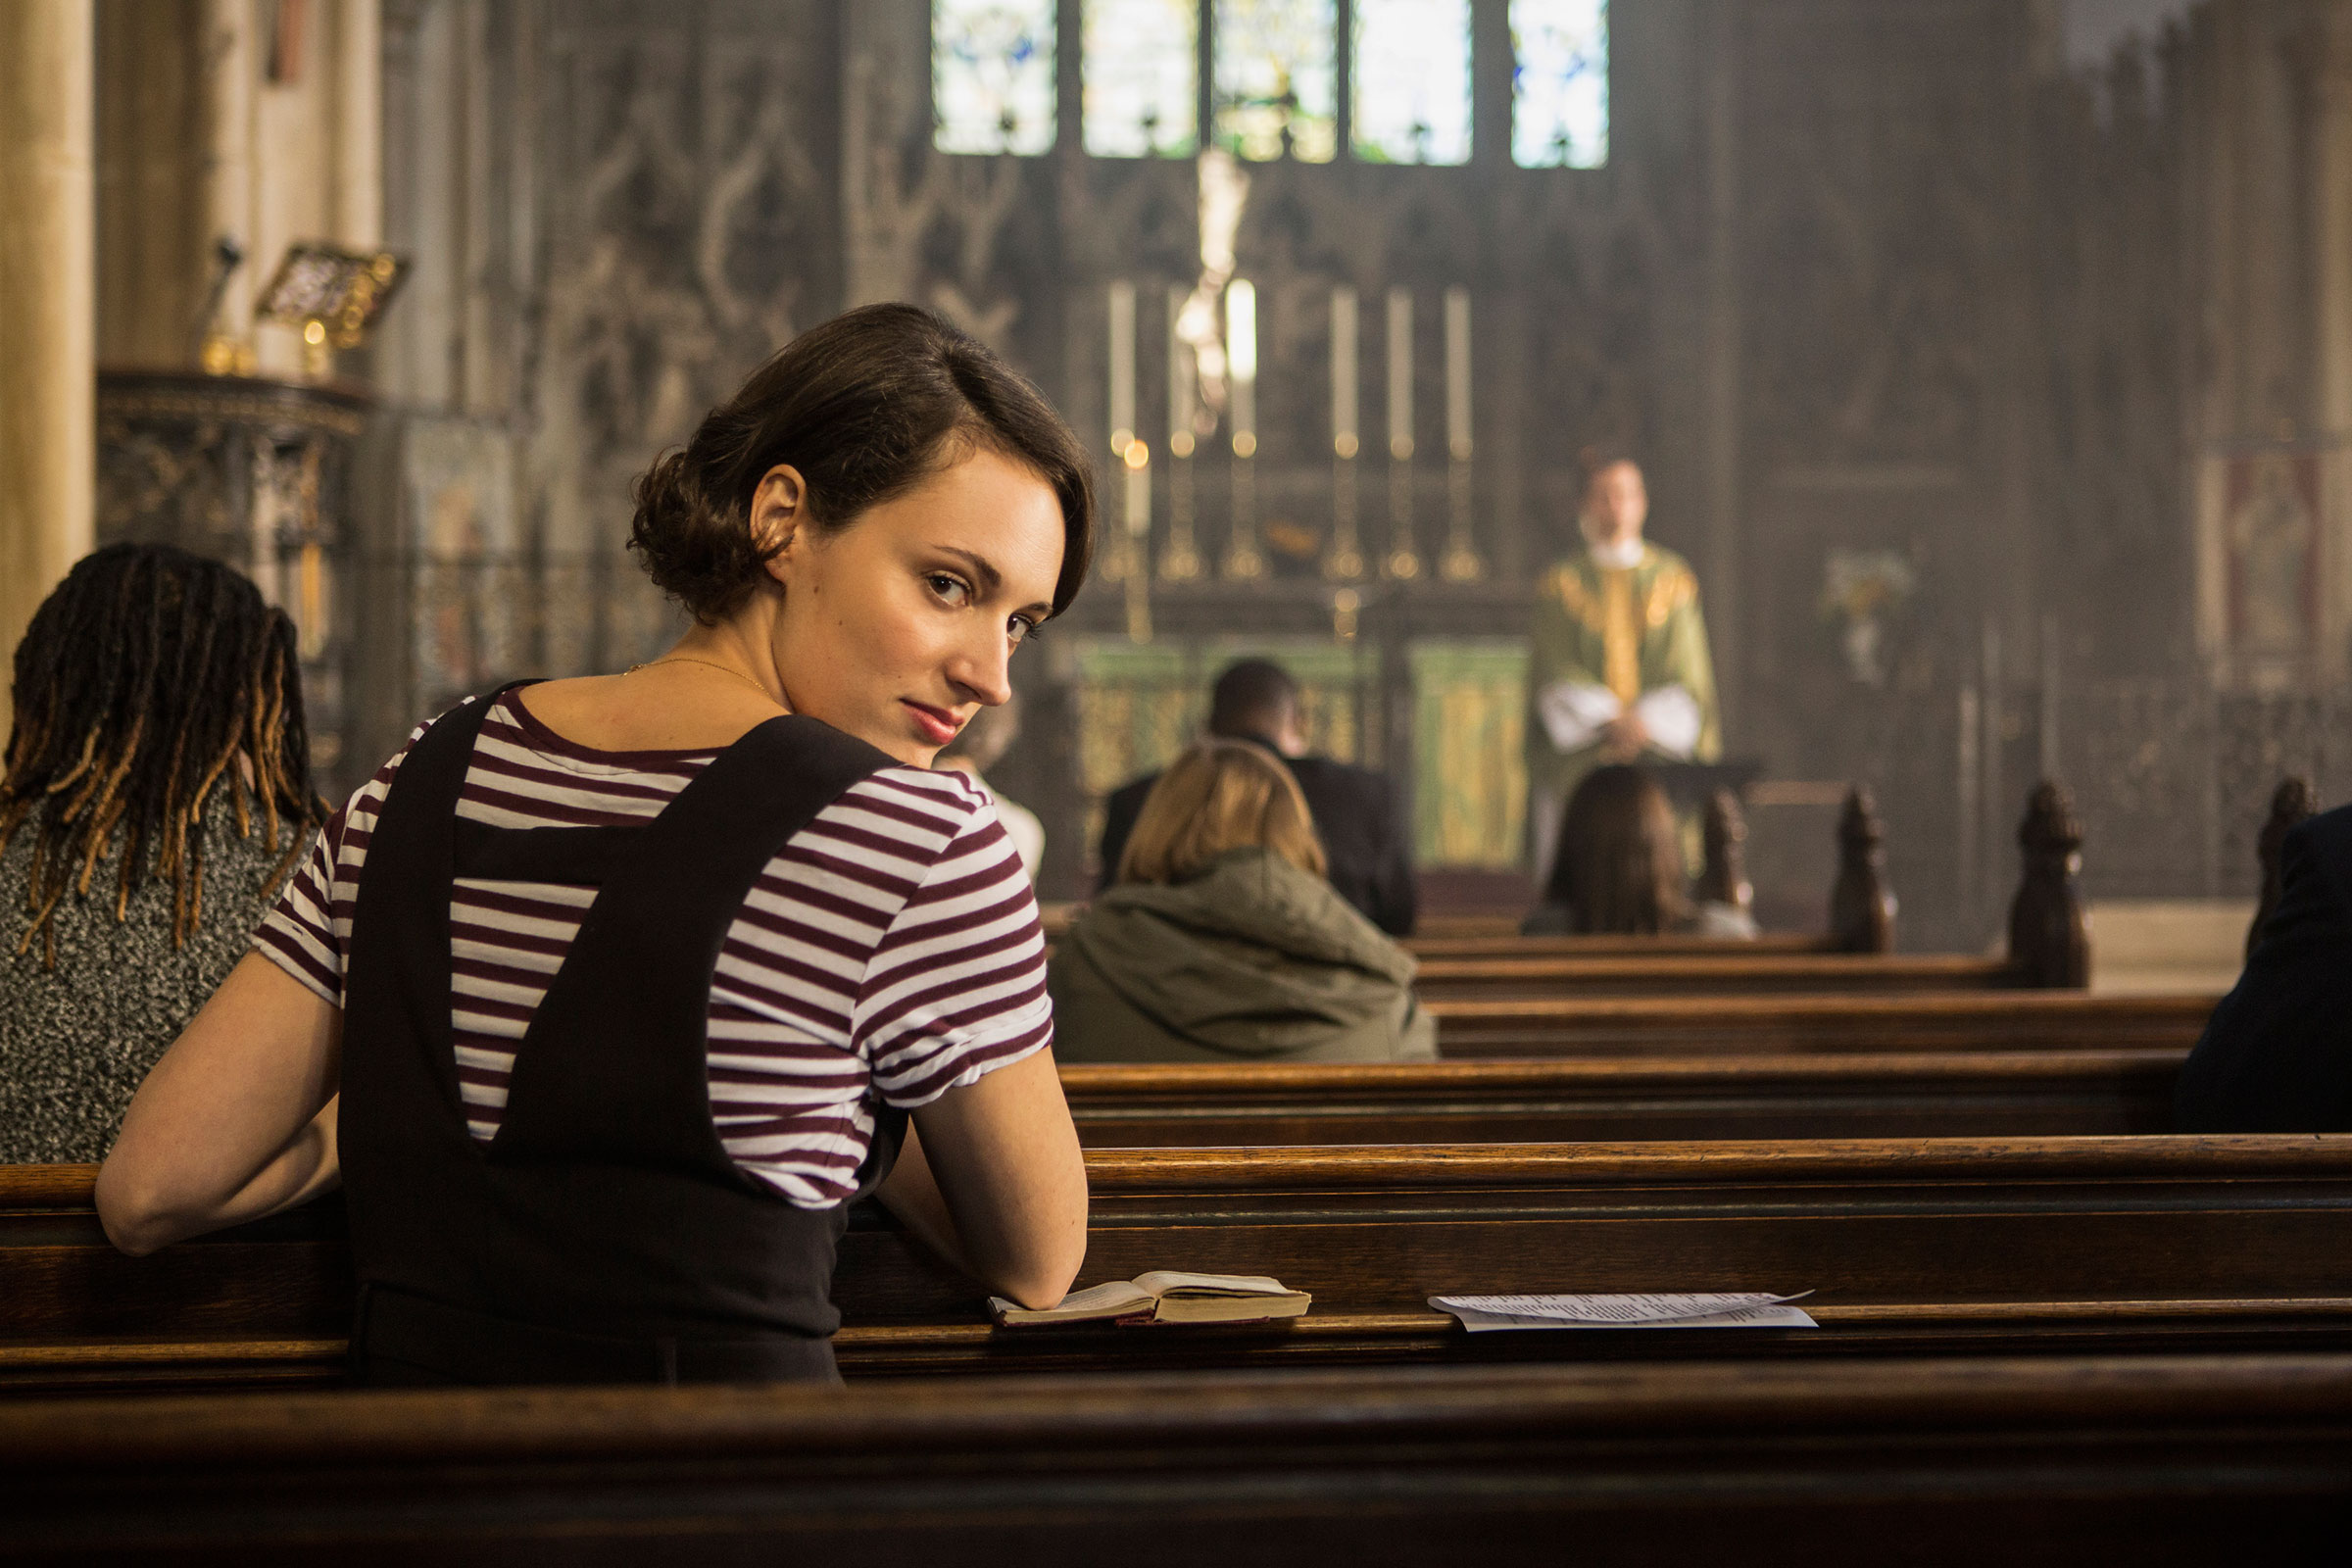 Fleabag (Phoebe Waller-Bridge) casts a knowing glance back over her shoulder as she sits in a pew of a church, listening to a service.